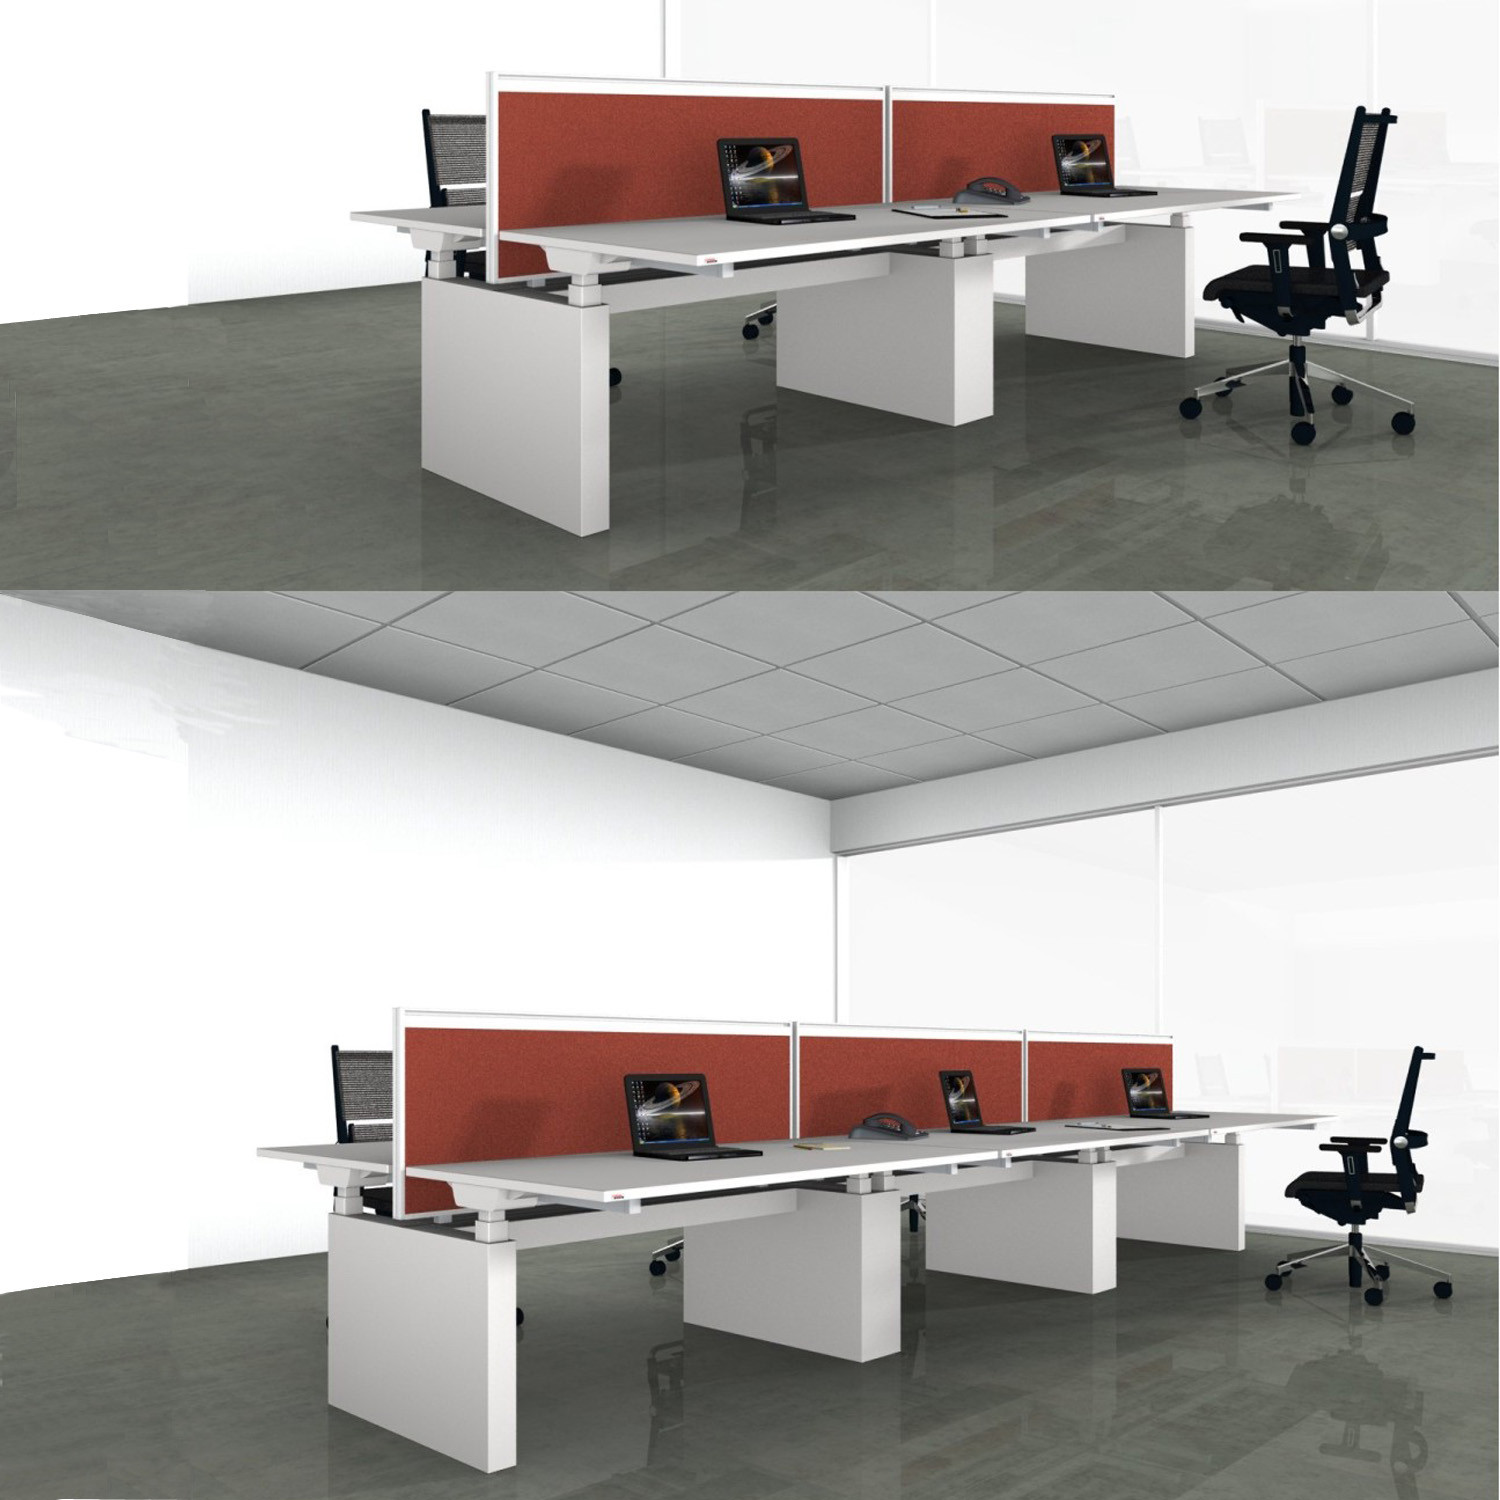 Canvaro Modular Bench Desks